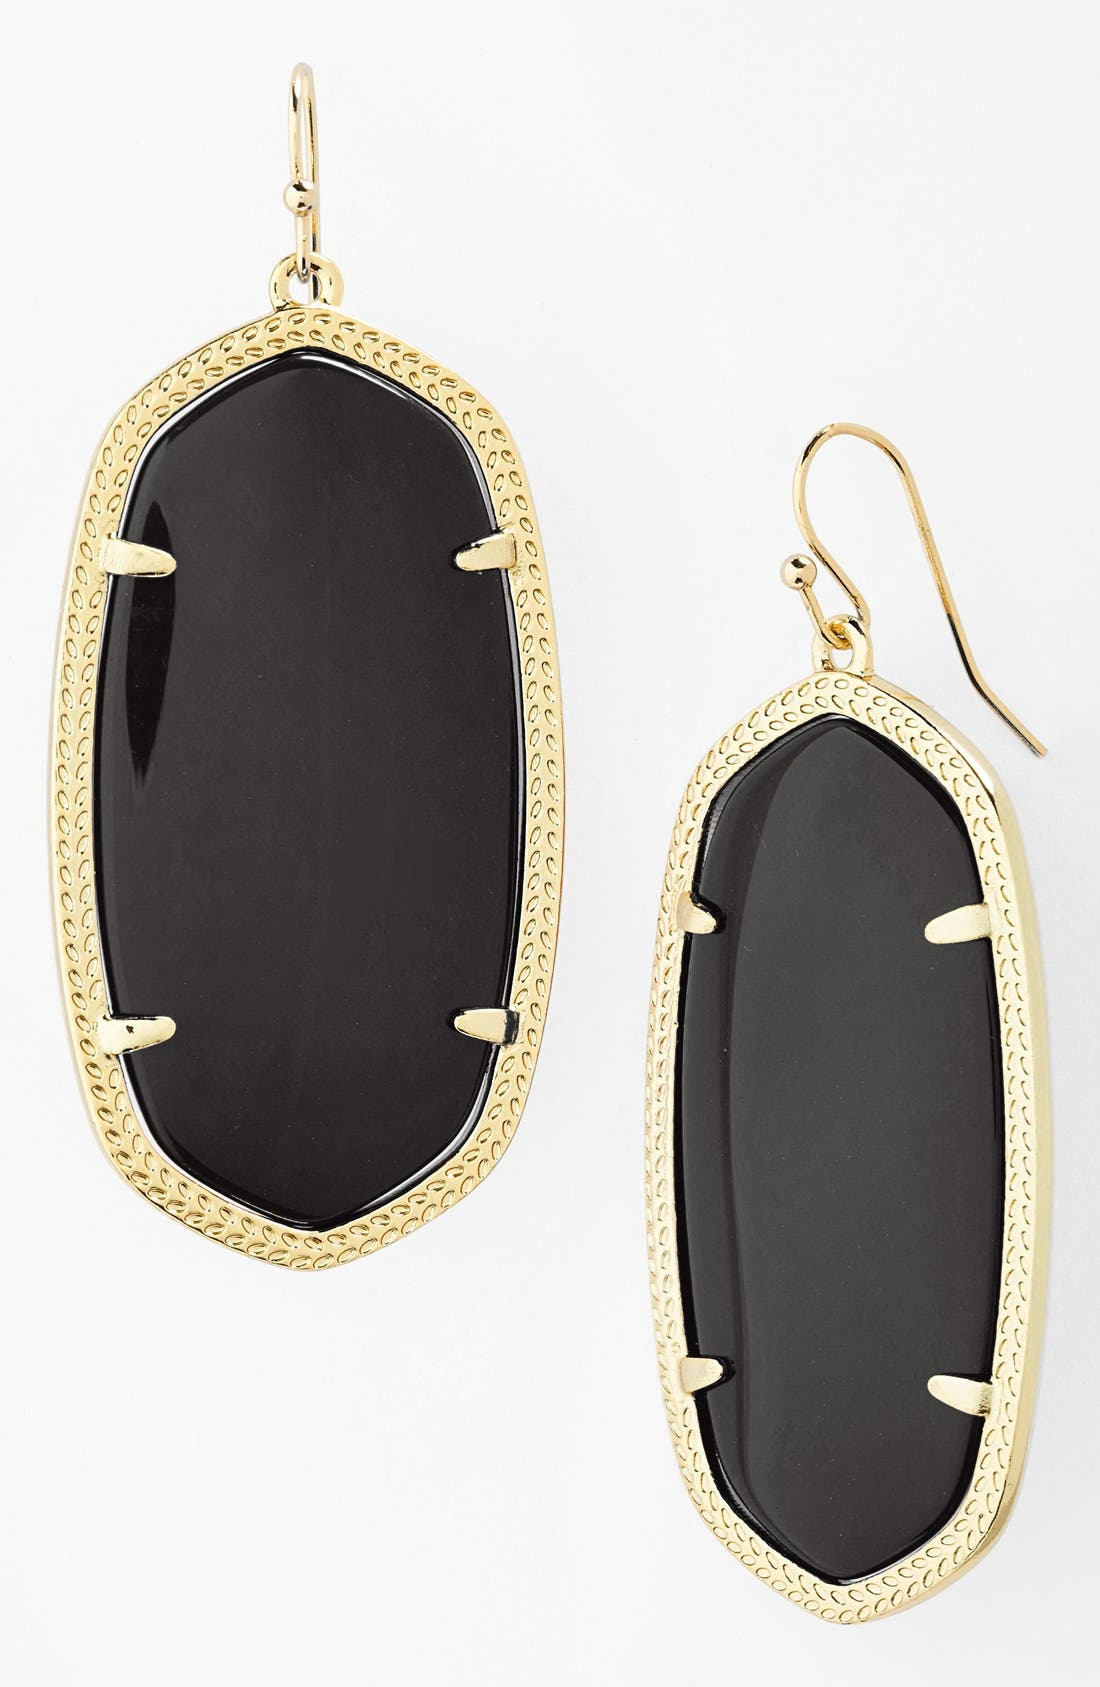 Danielle - Large Oval Statement Earrings,                             Main thumbnail 1, color,                             001